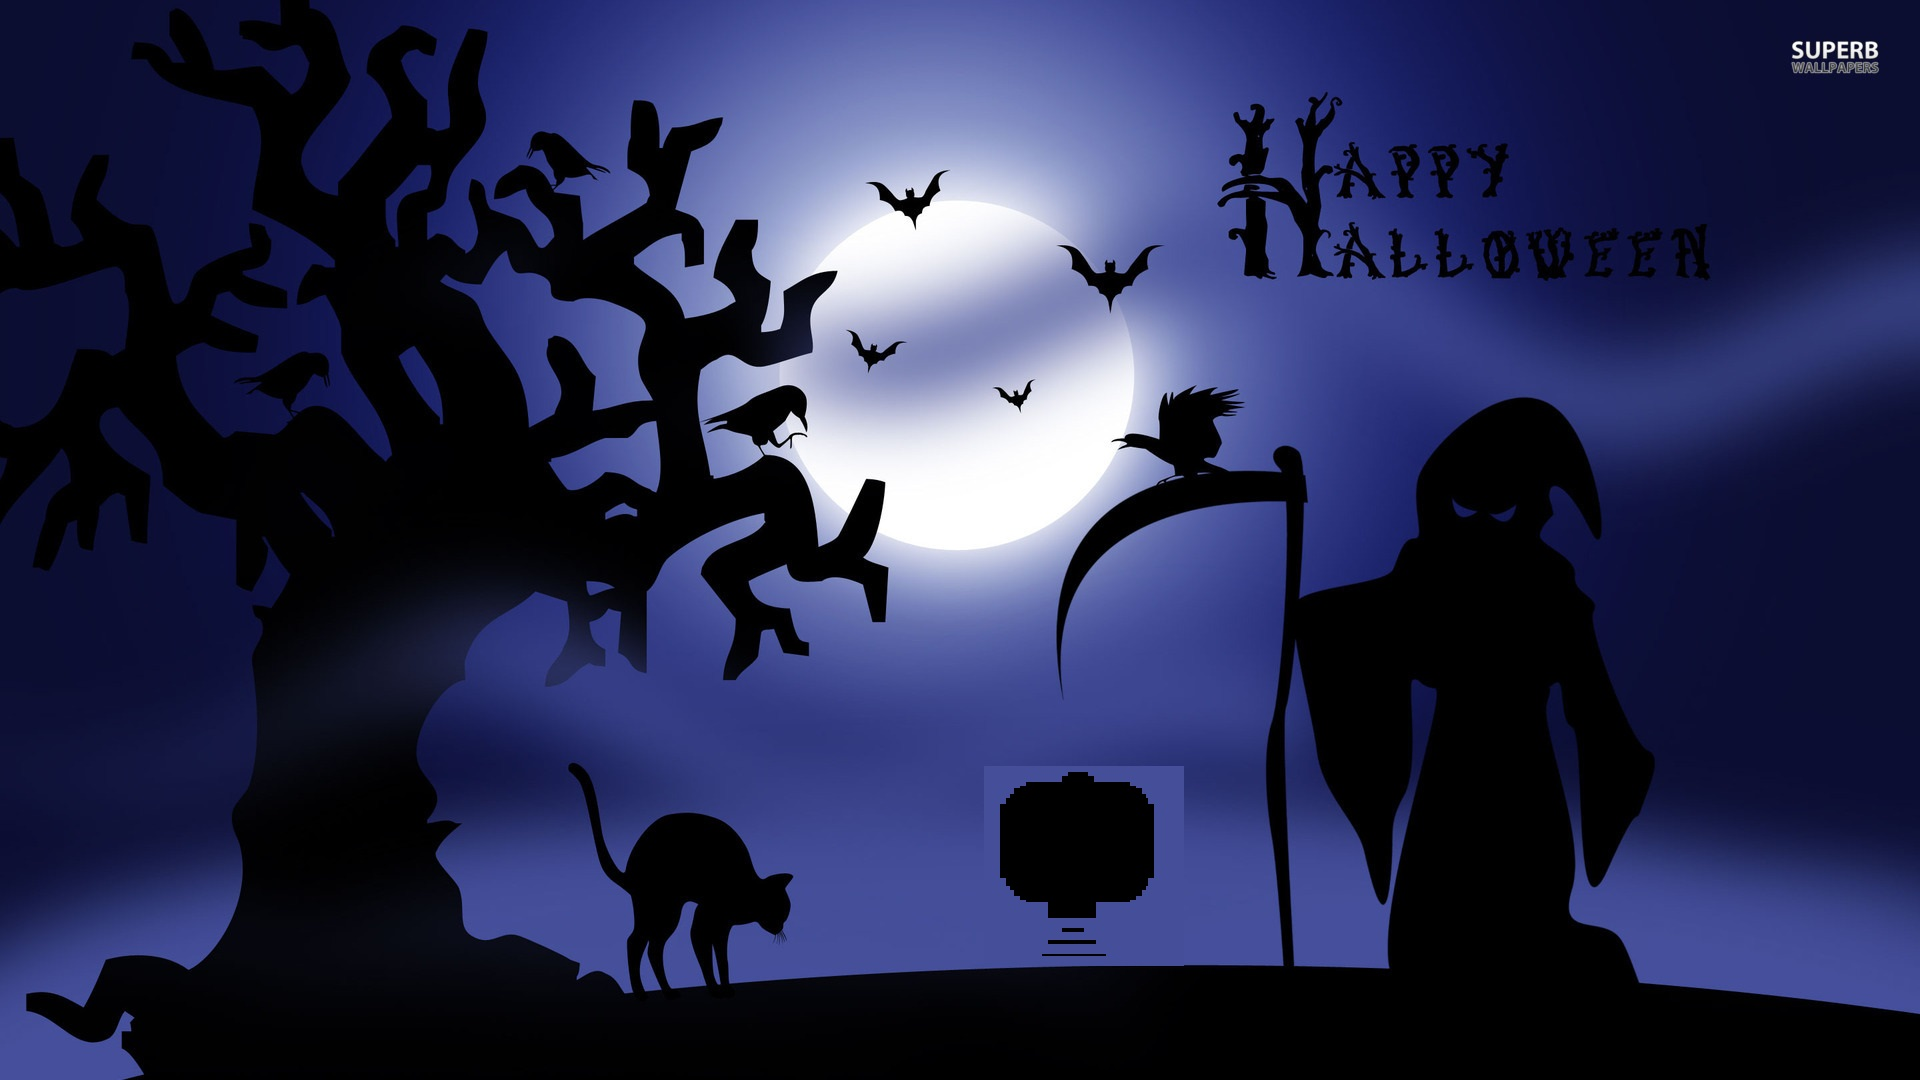 Happy Halloween Wallpaper 08 smallbot 1920x1080